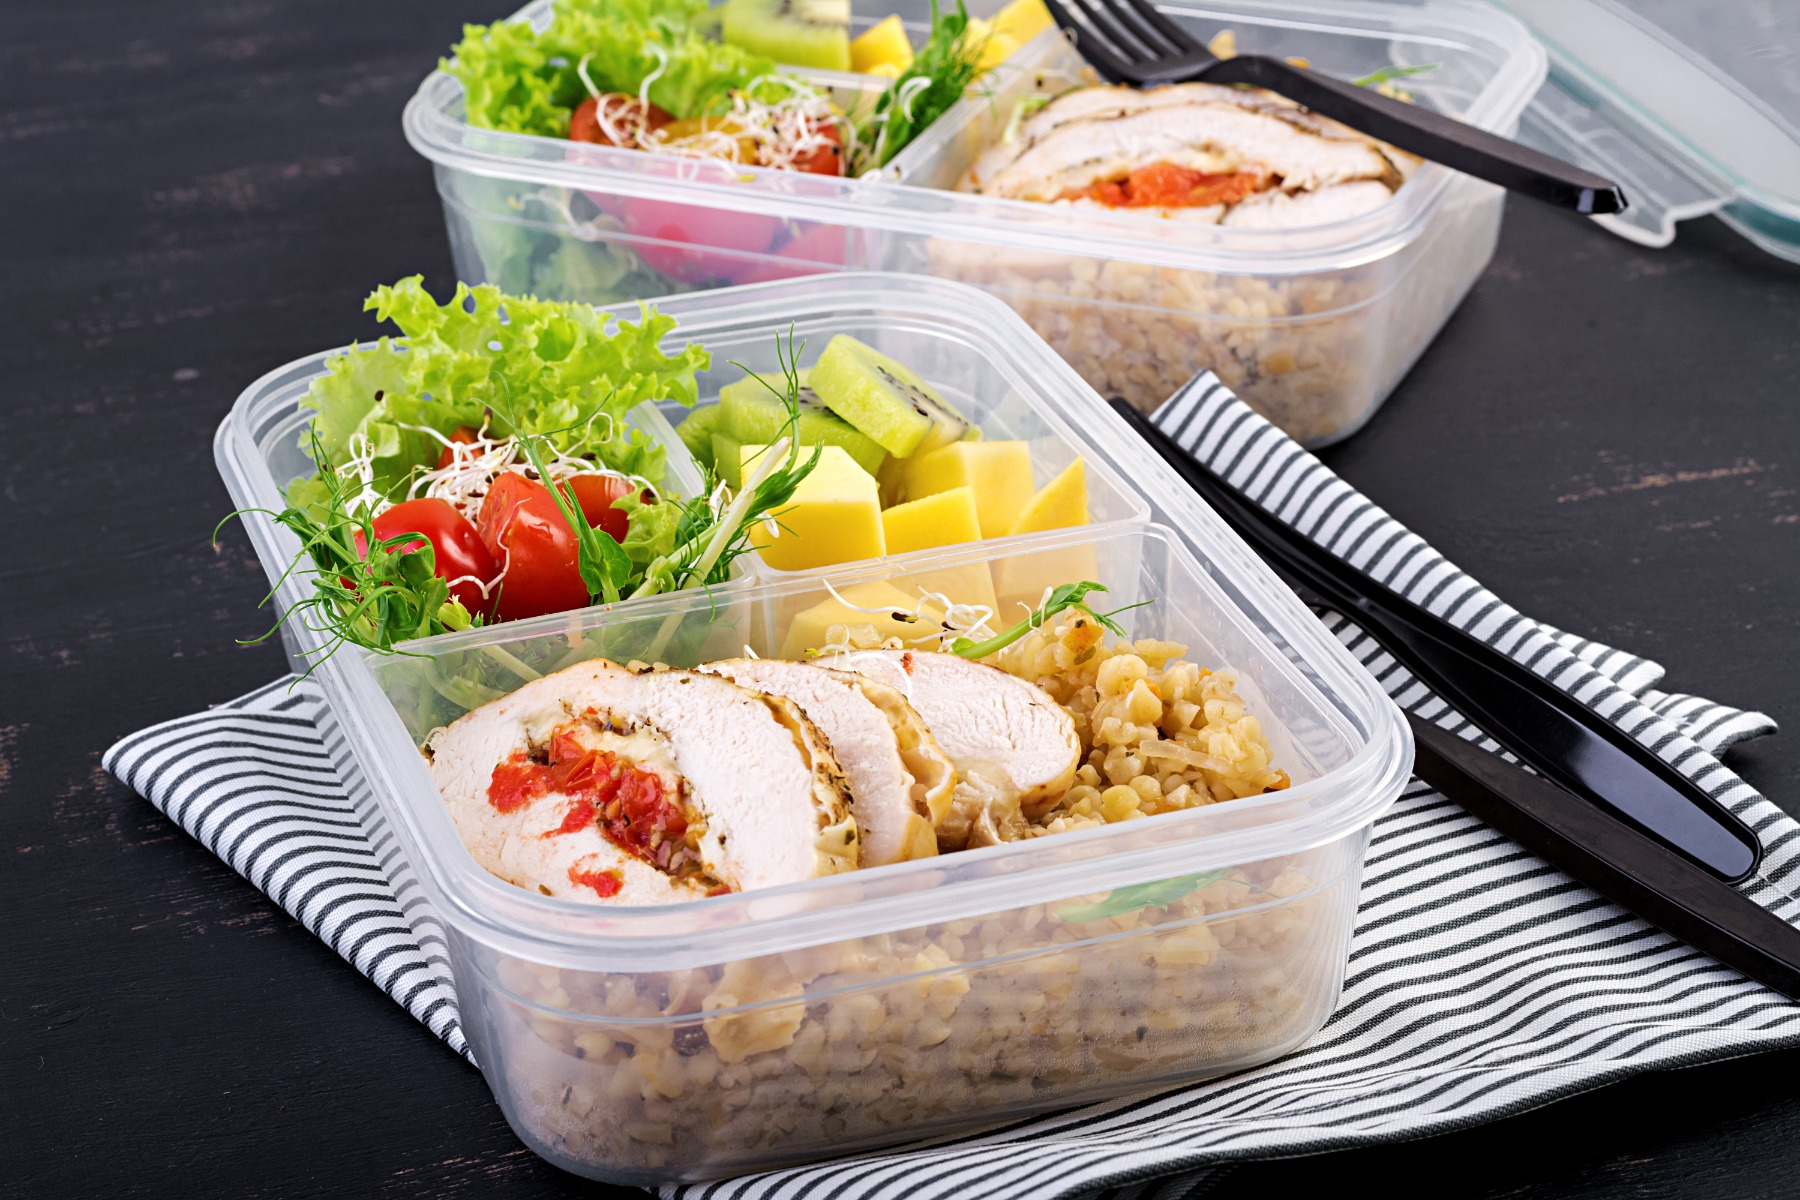 lunch-box-chicken-bulgur-microgreens-tomato-and-fr-6MYCRN9